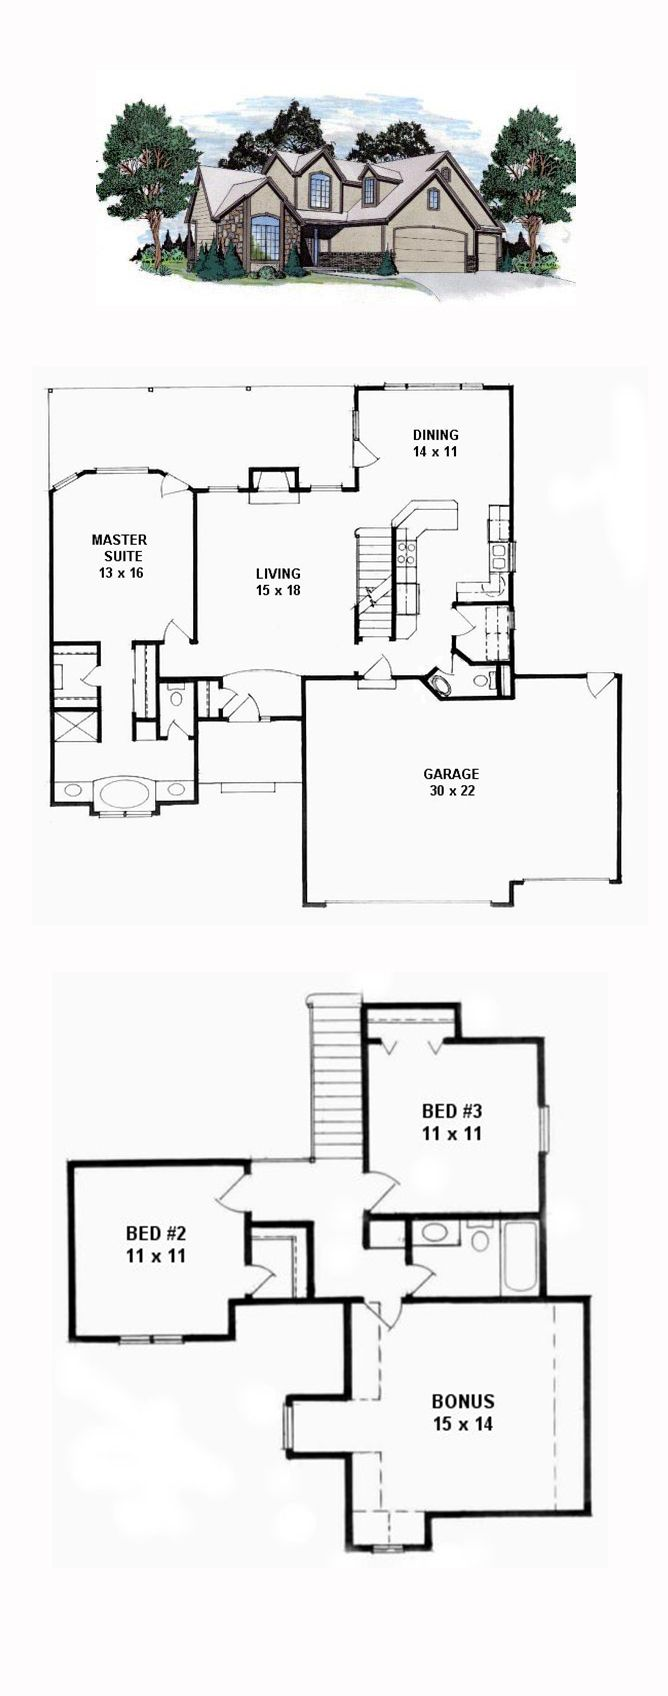 16 Best European French House Plans Images On Pinterest